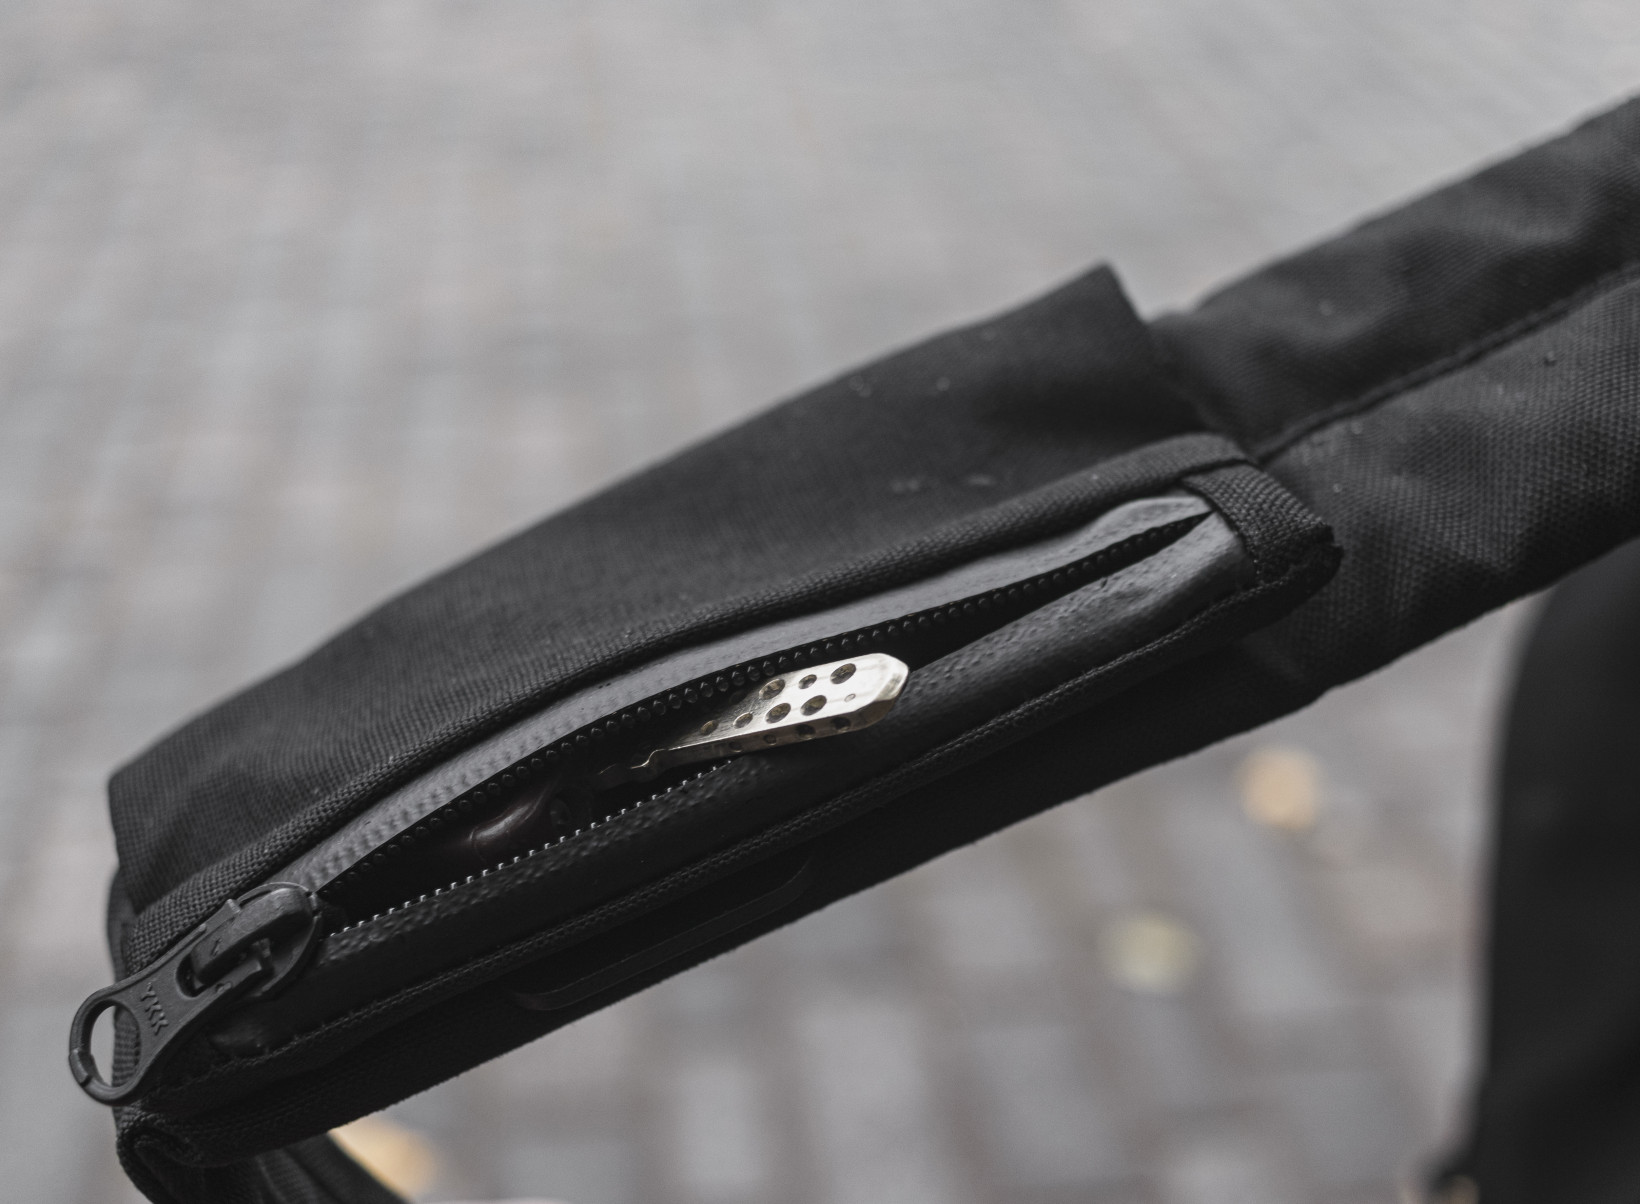 There are zippered pockets on the shoulder straps for small items like your keys